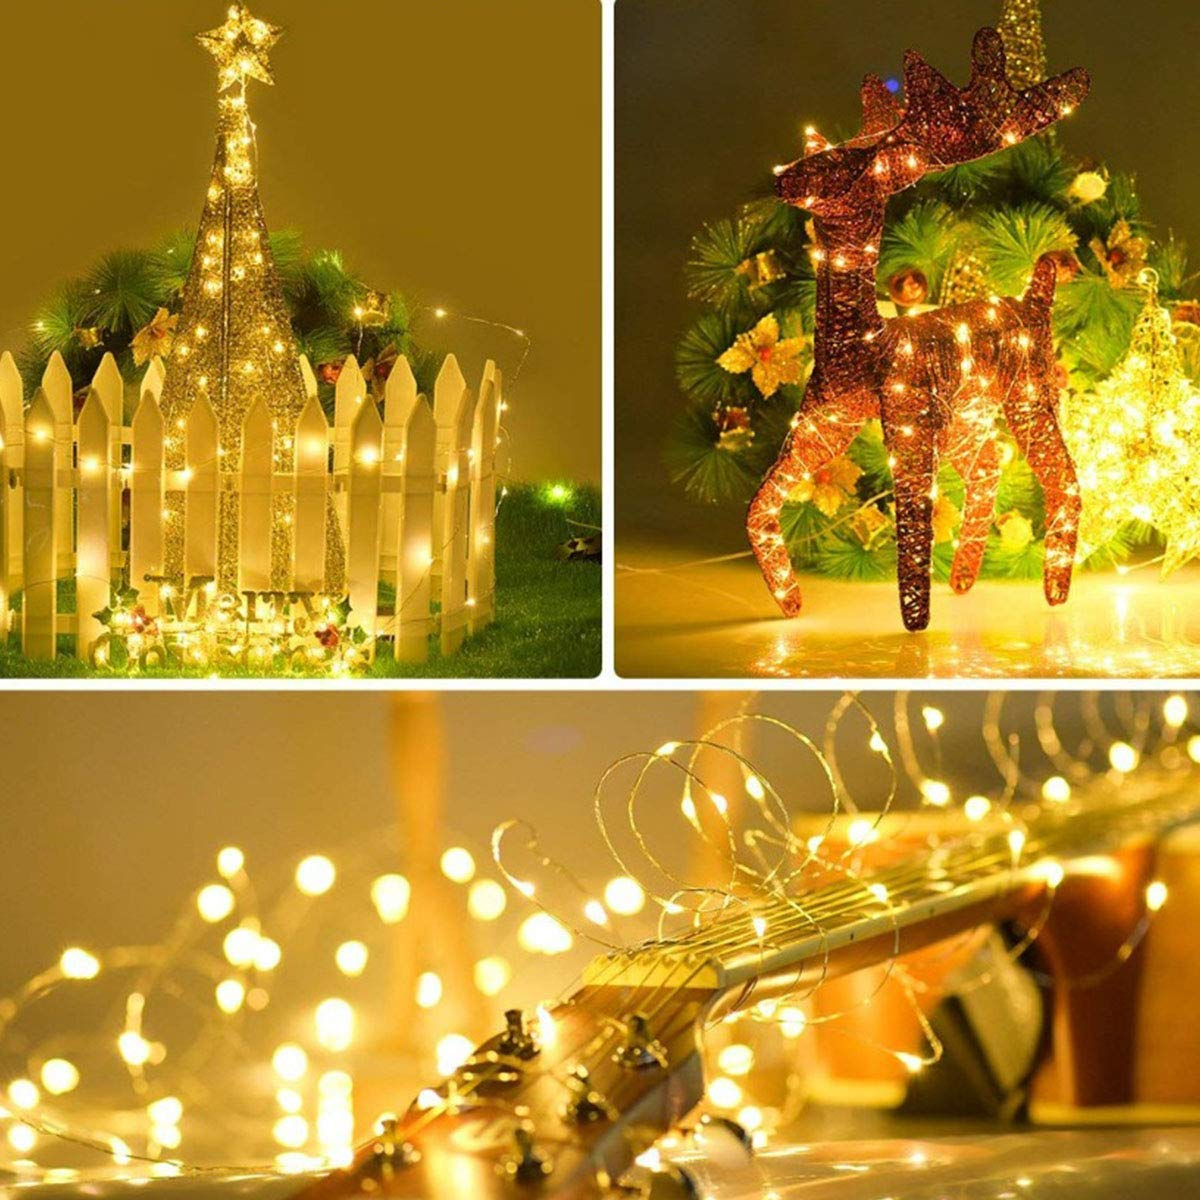 Inshere Upgraded Solar String Lights, 2 Pack of 66ft 200LED Outdoor Waterproof Fairy Copper Wire Lights with 8 Modes for Home Patio Yard Party Wedding Halloween Christmas Decor(Warm White)